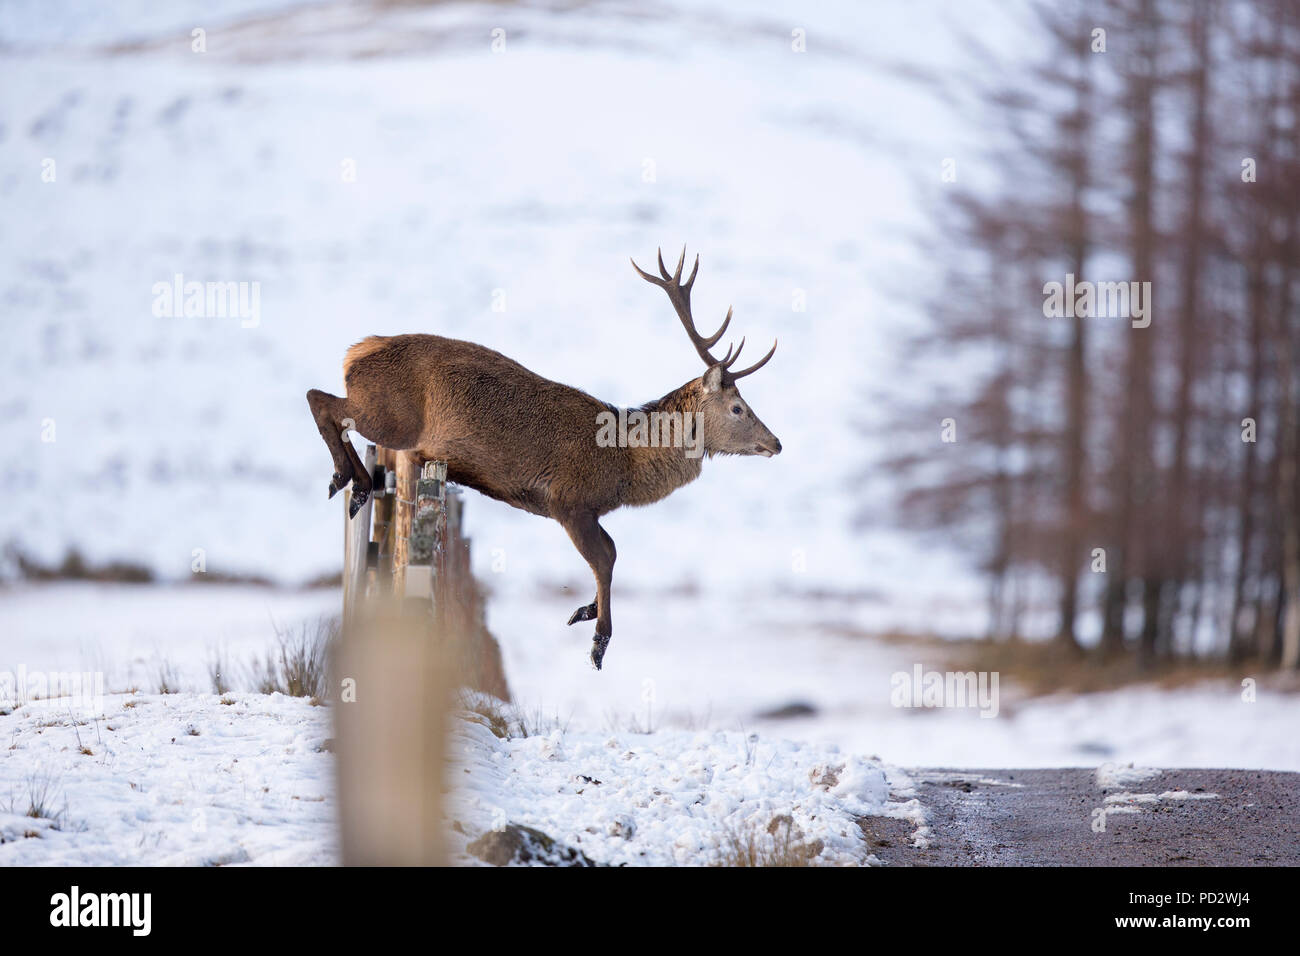 Red Deer Cervus elaphus - Stock Image